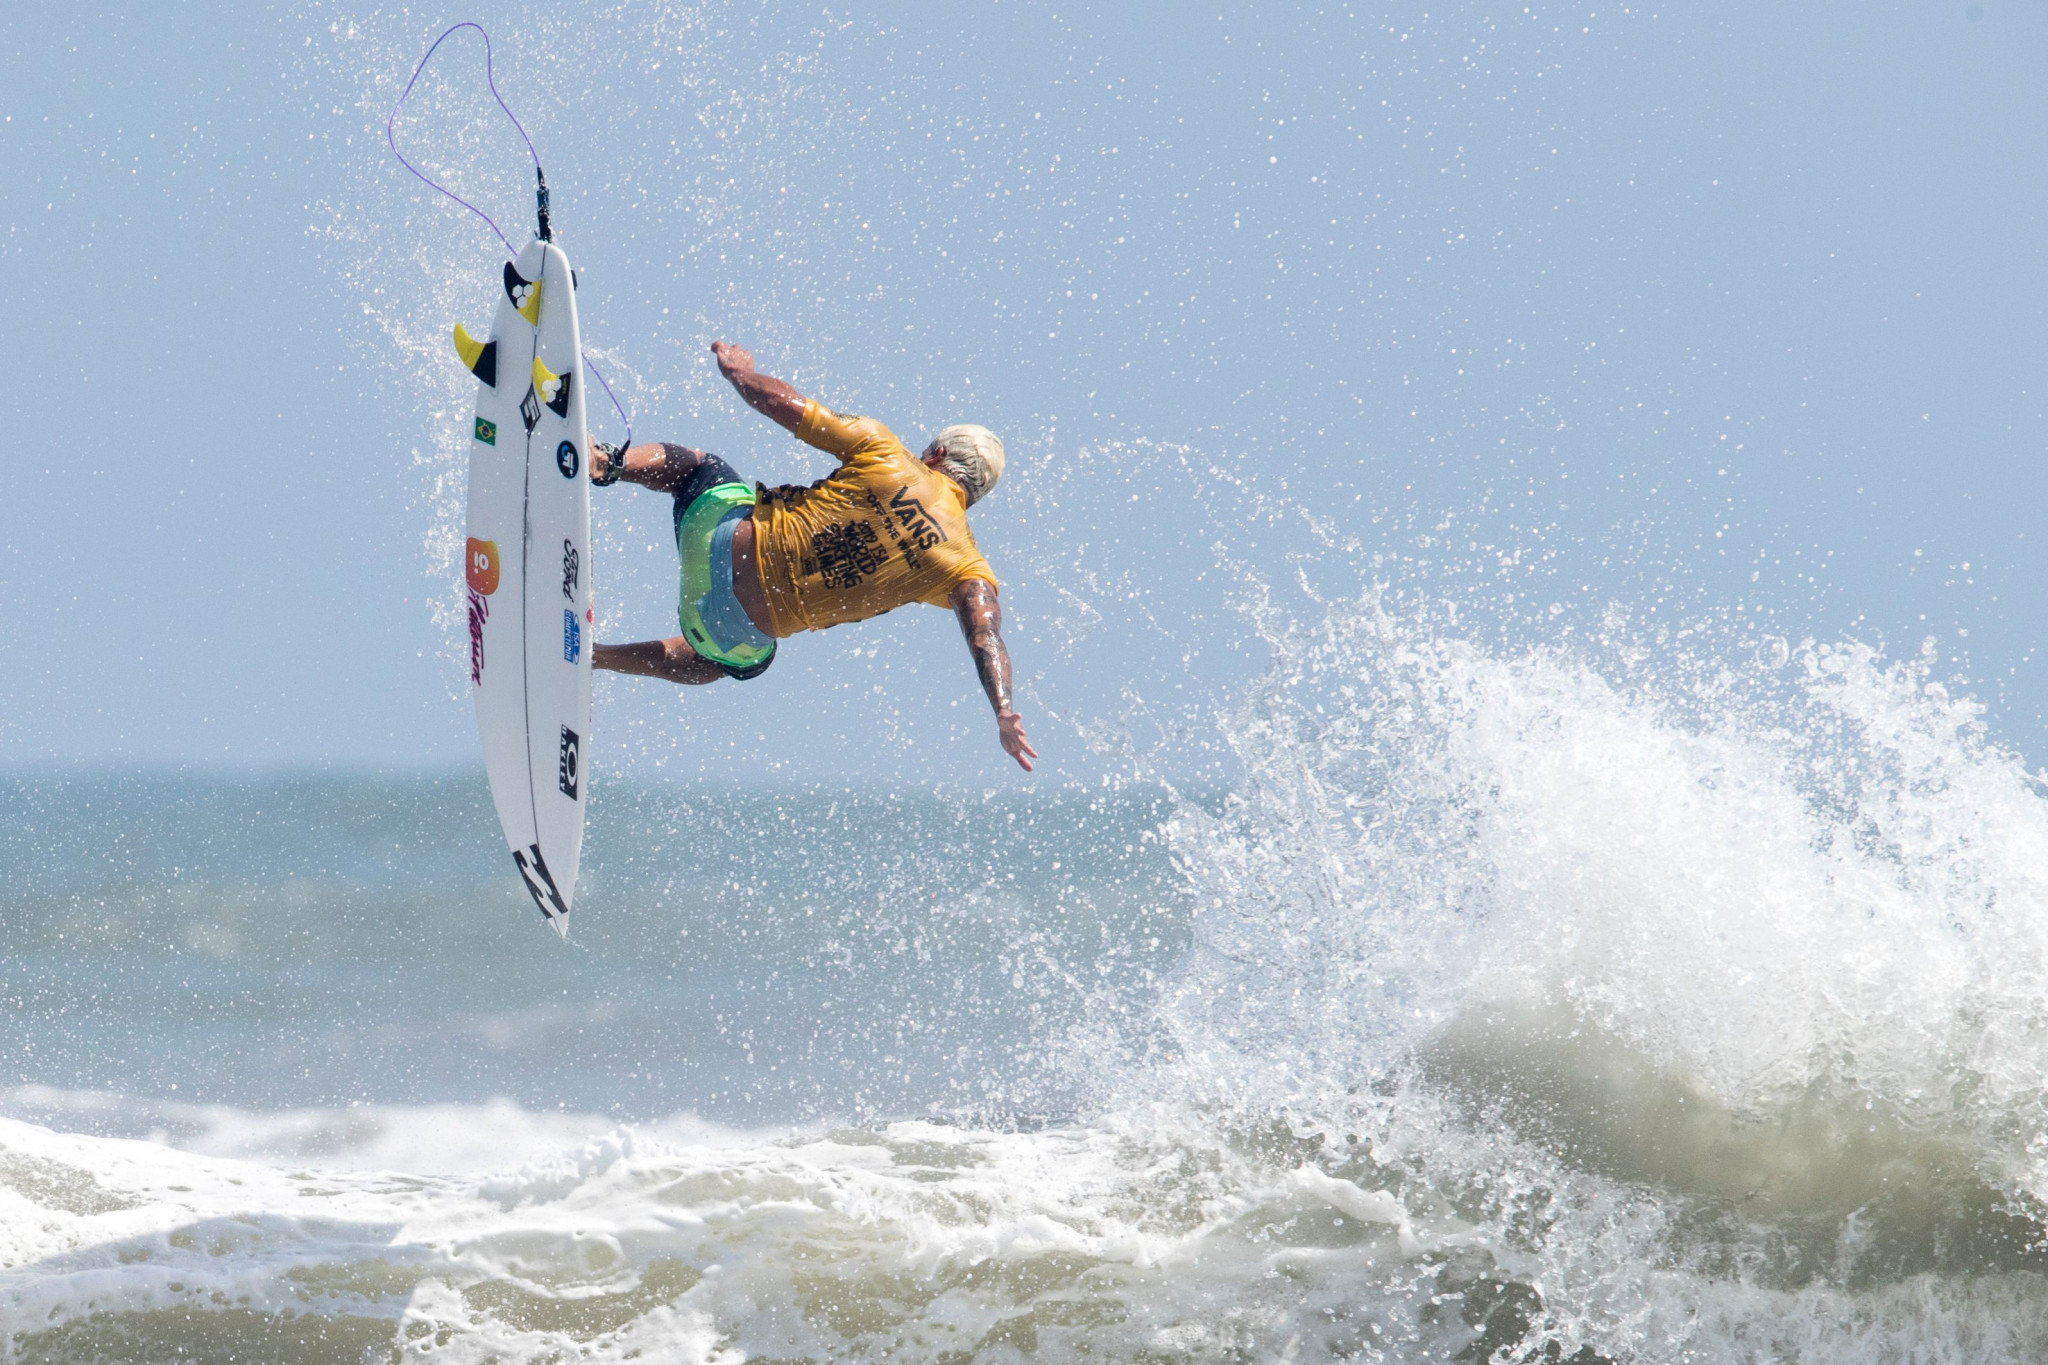 The 2021 World Surfing Games are set to be held in May and June under new COVID-19 protocols ©Getty Images